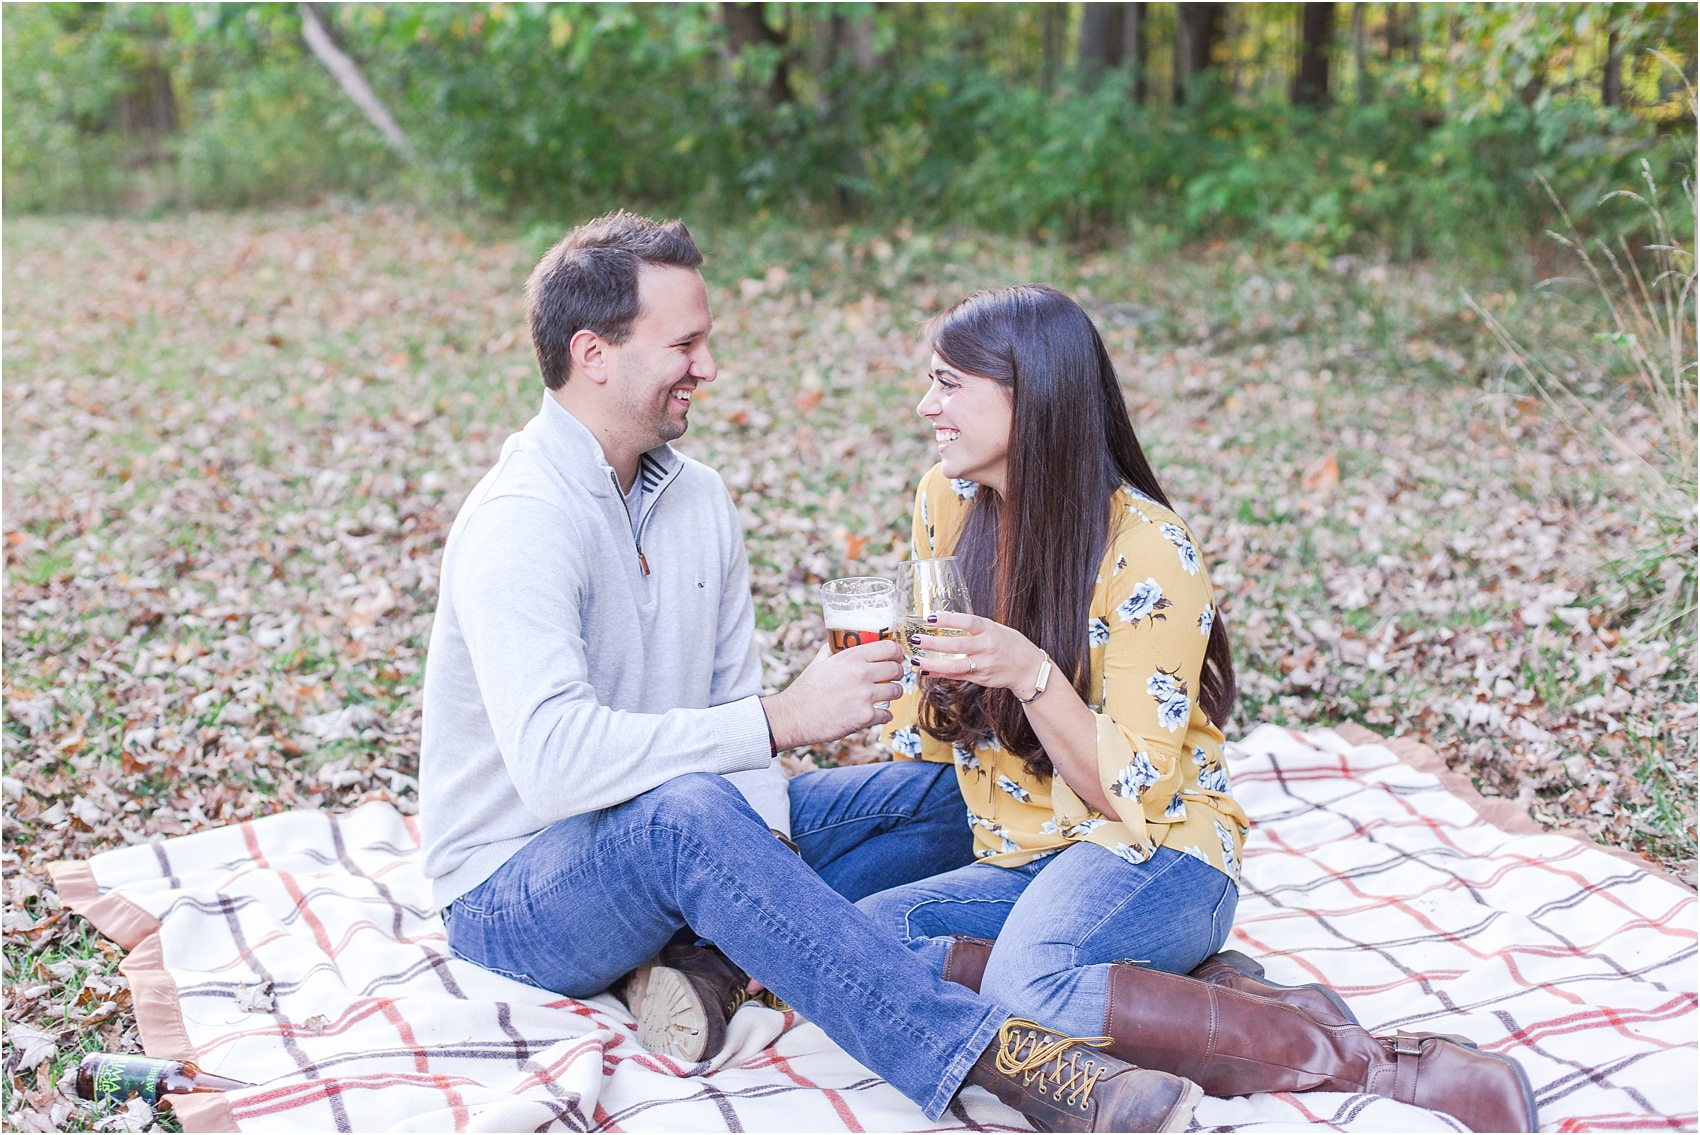 relaxed-autumn-engagement-photos-at-hudson-mills-metropark-in-dexter-mi-by-courtney-carolyn-photography_0028.jpg